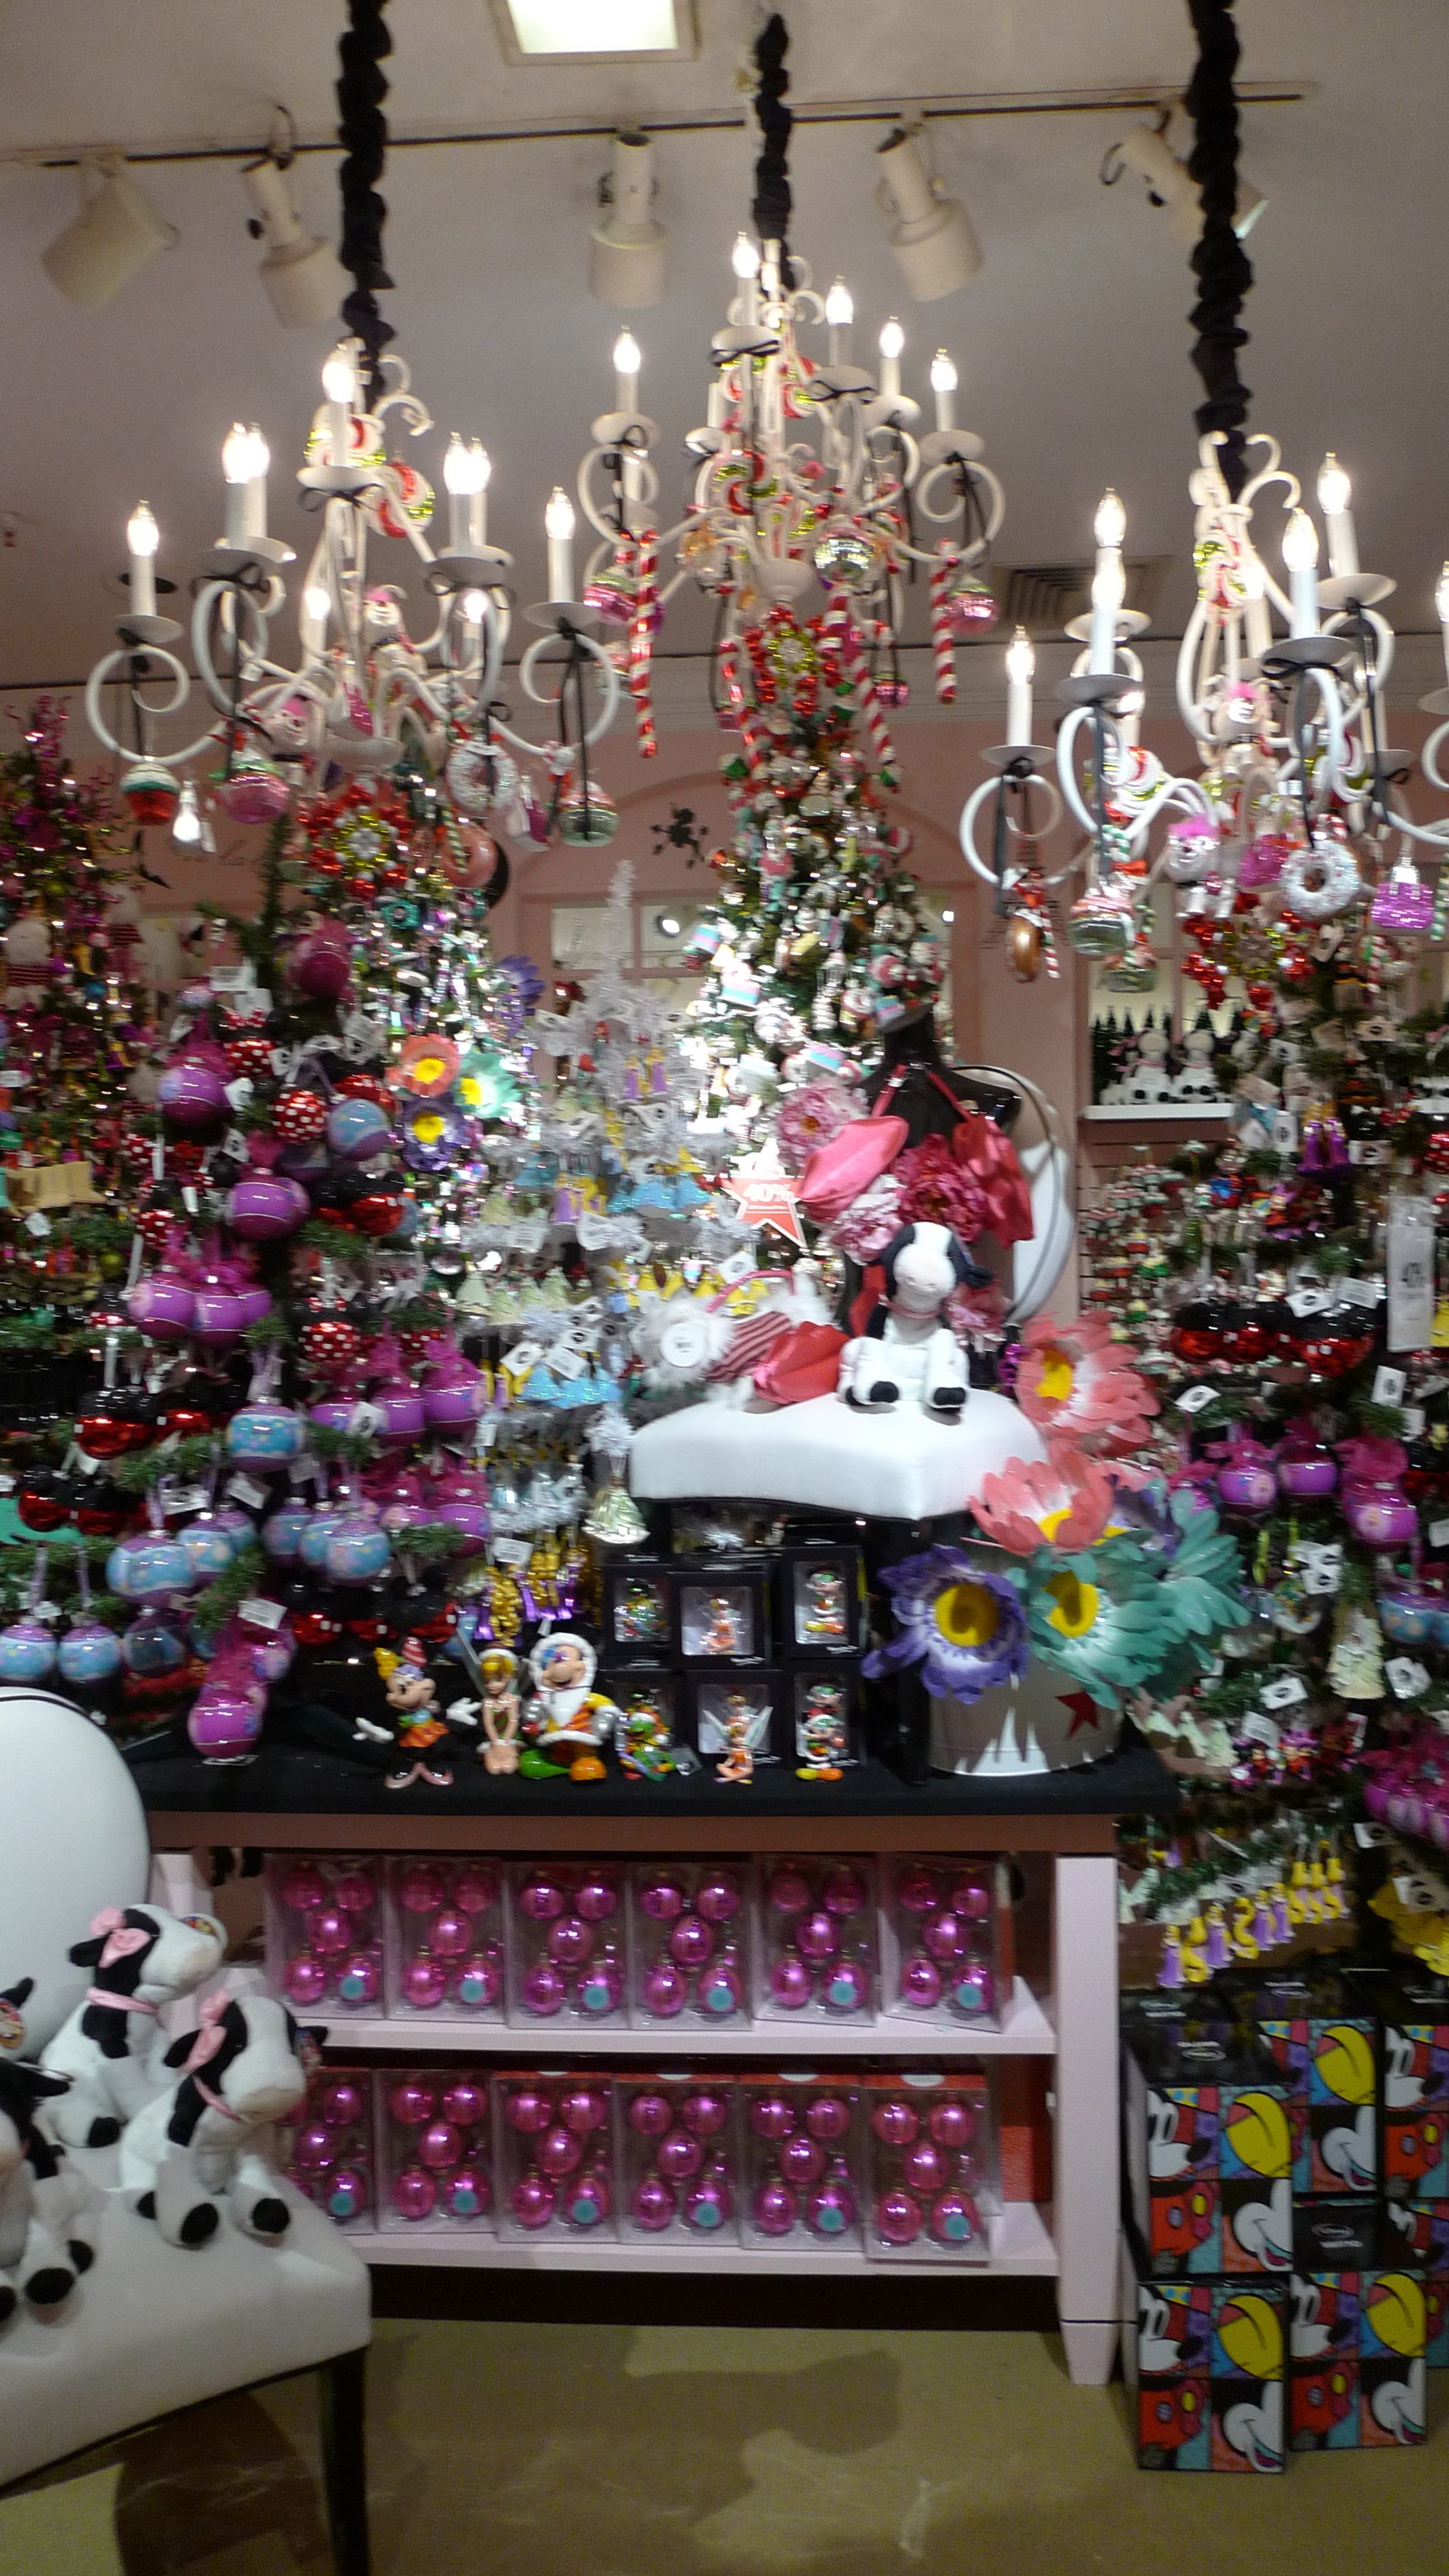 #78416C Christmas Decoration New York 2015 Holliday Decorations 5549 decorations noel new york 2232x3968 px @ aertt.com